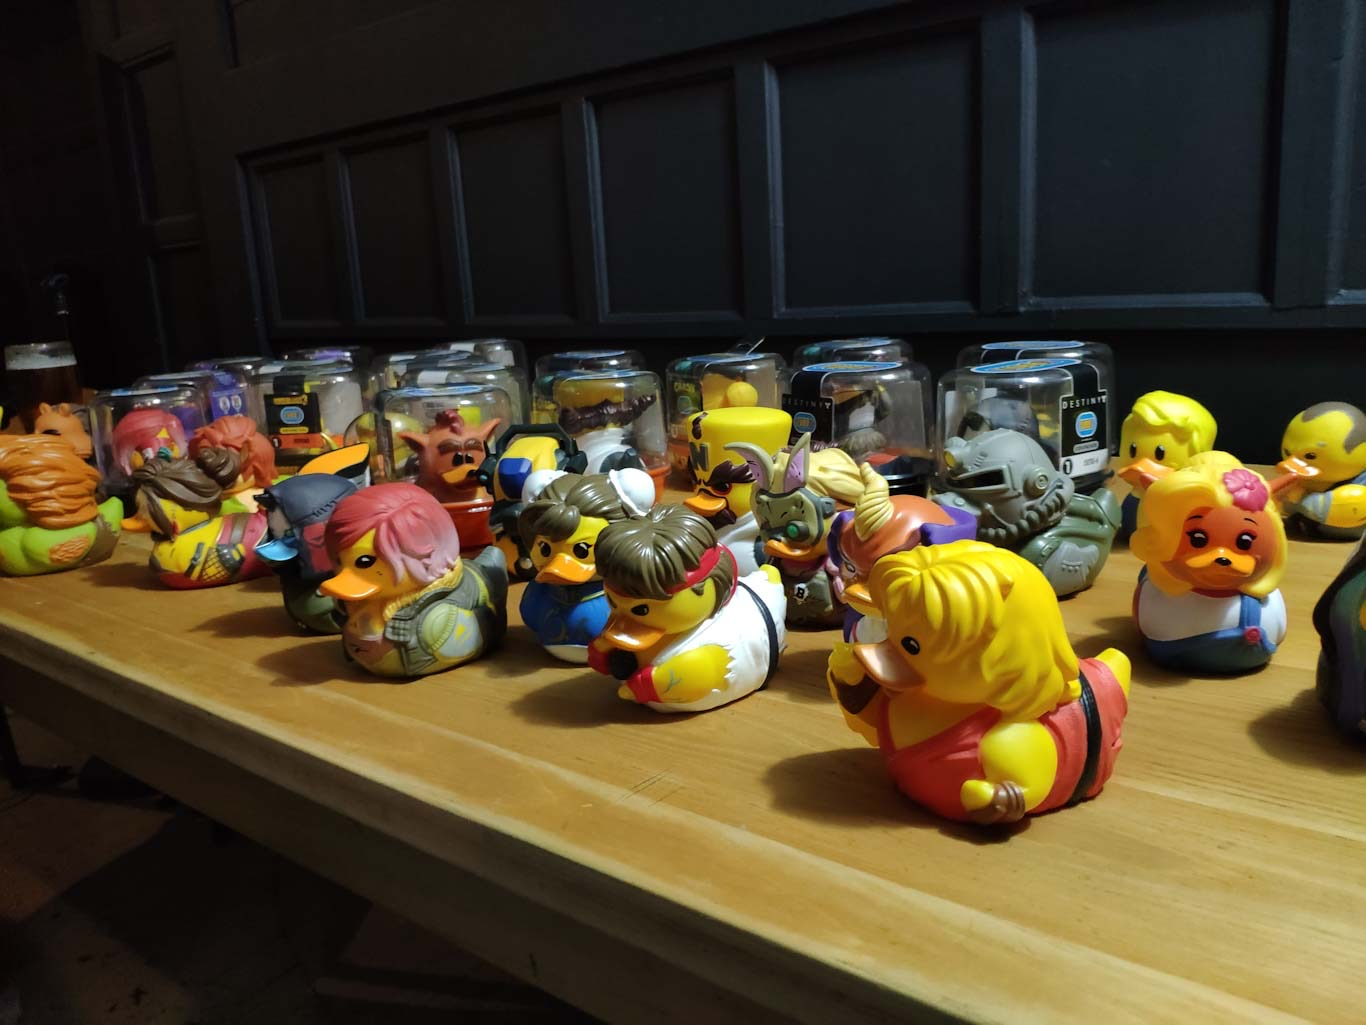 5cb20ddafee Numskull converts your favourite characters into rubber ducks with ...